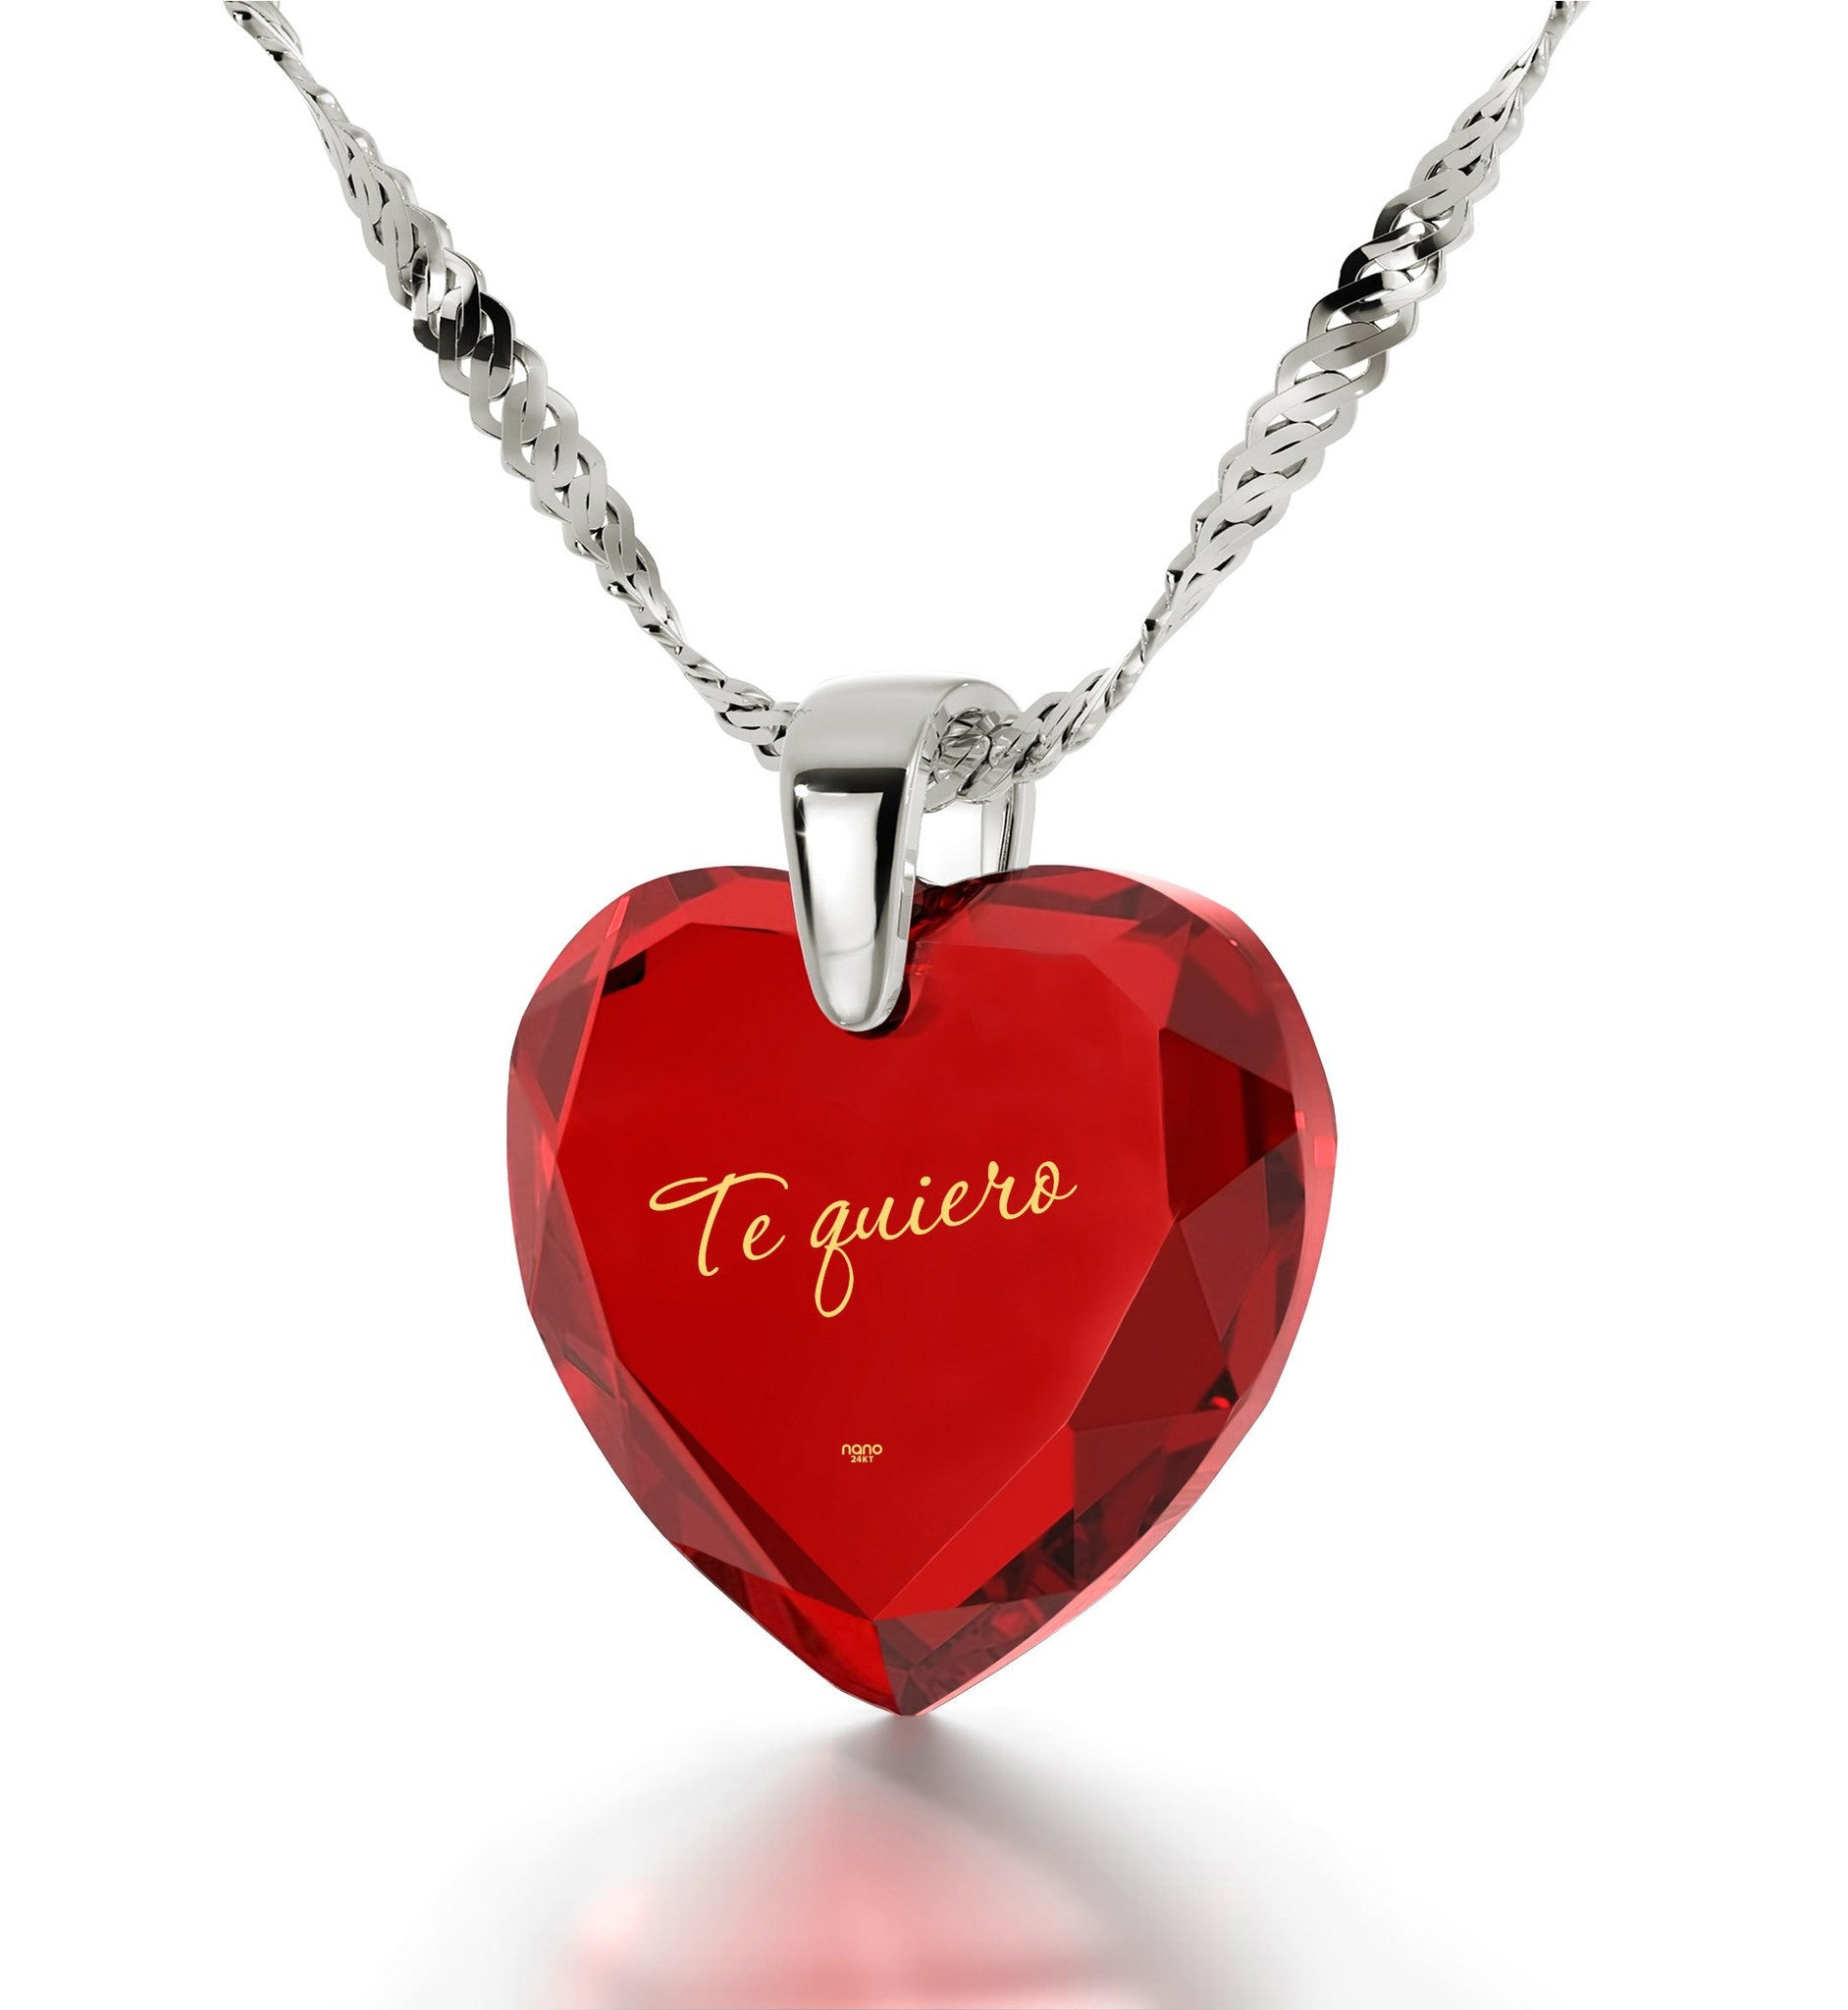 "Cute Necklaces for Her, 24k Engraved Pendant,""Te Quiero"", 30th Birthday Present Ideas, Nano Jewelry"